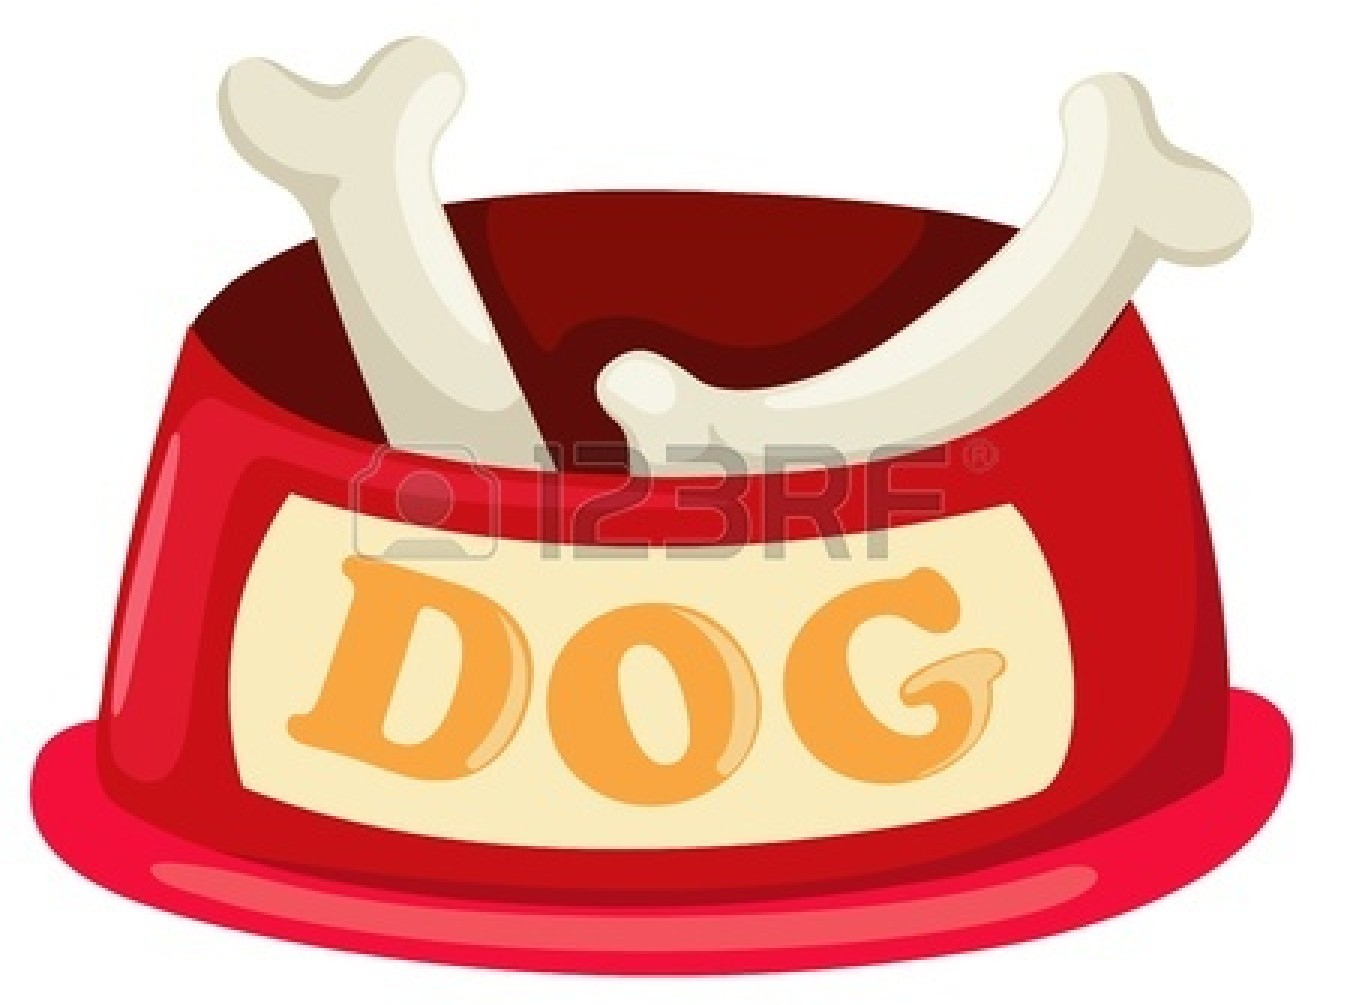 Holzstapel Clipart Dog Bowl Clipart - Clipground